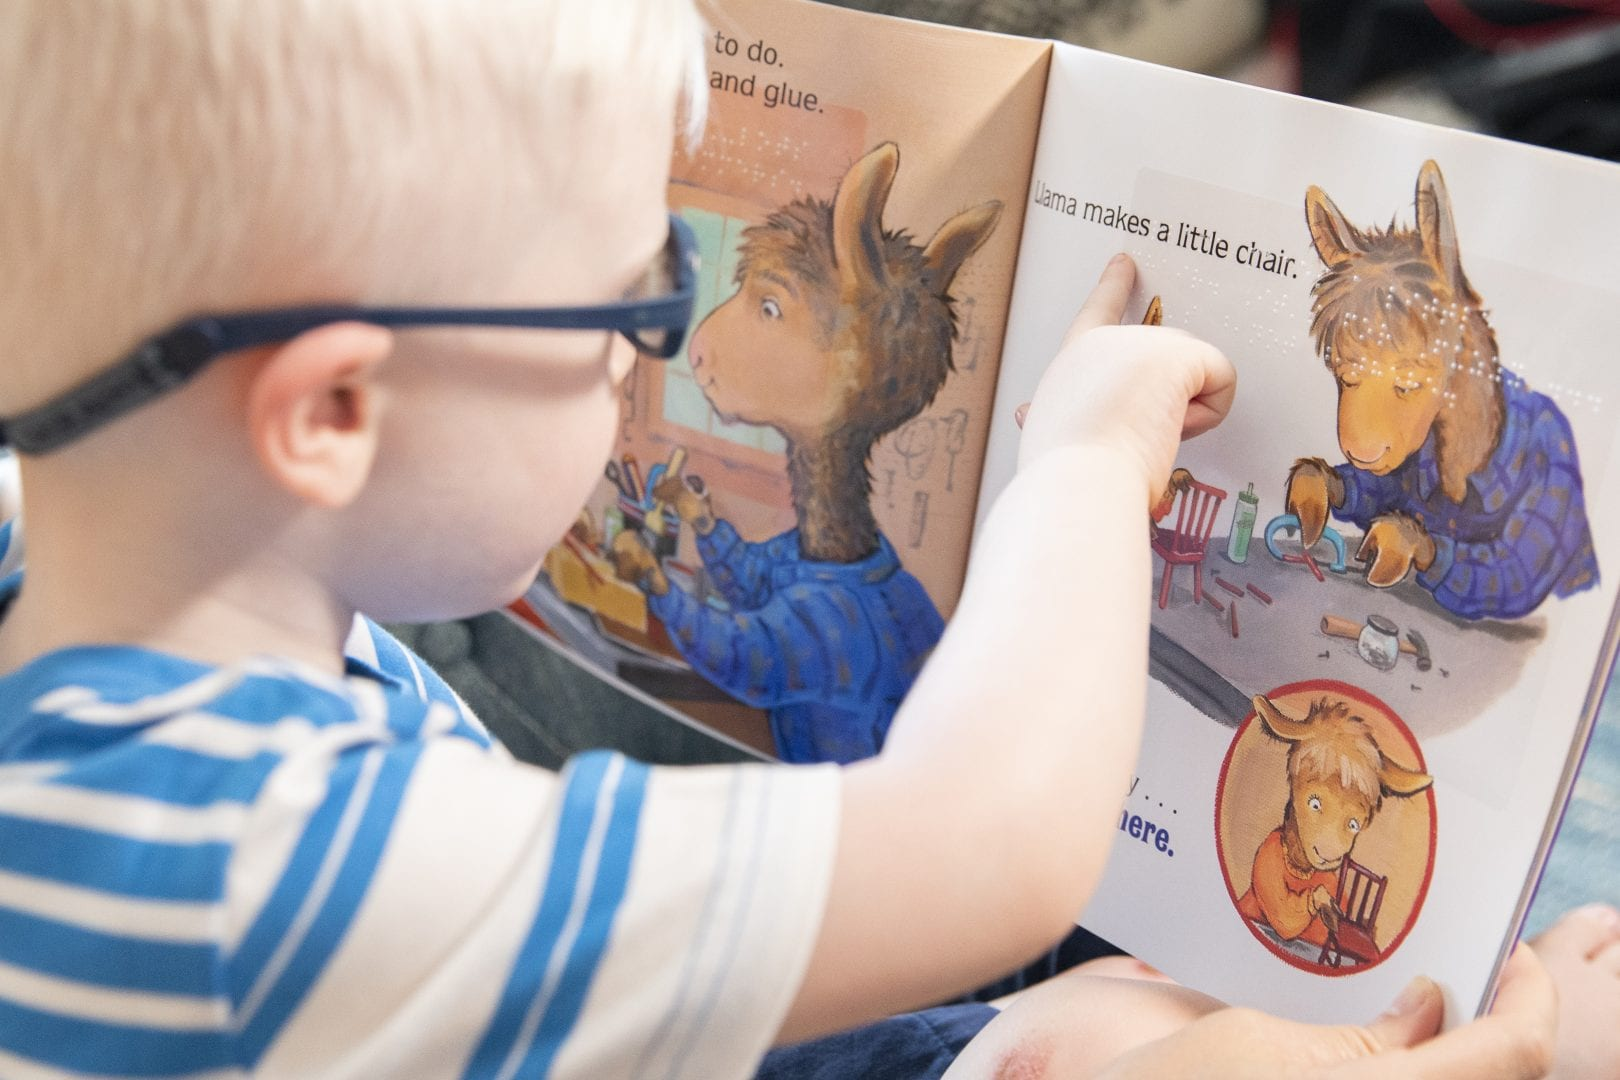 a young boy in glasses touching the braille in a Llama Llama book